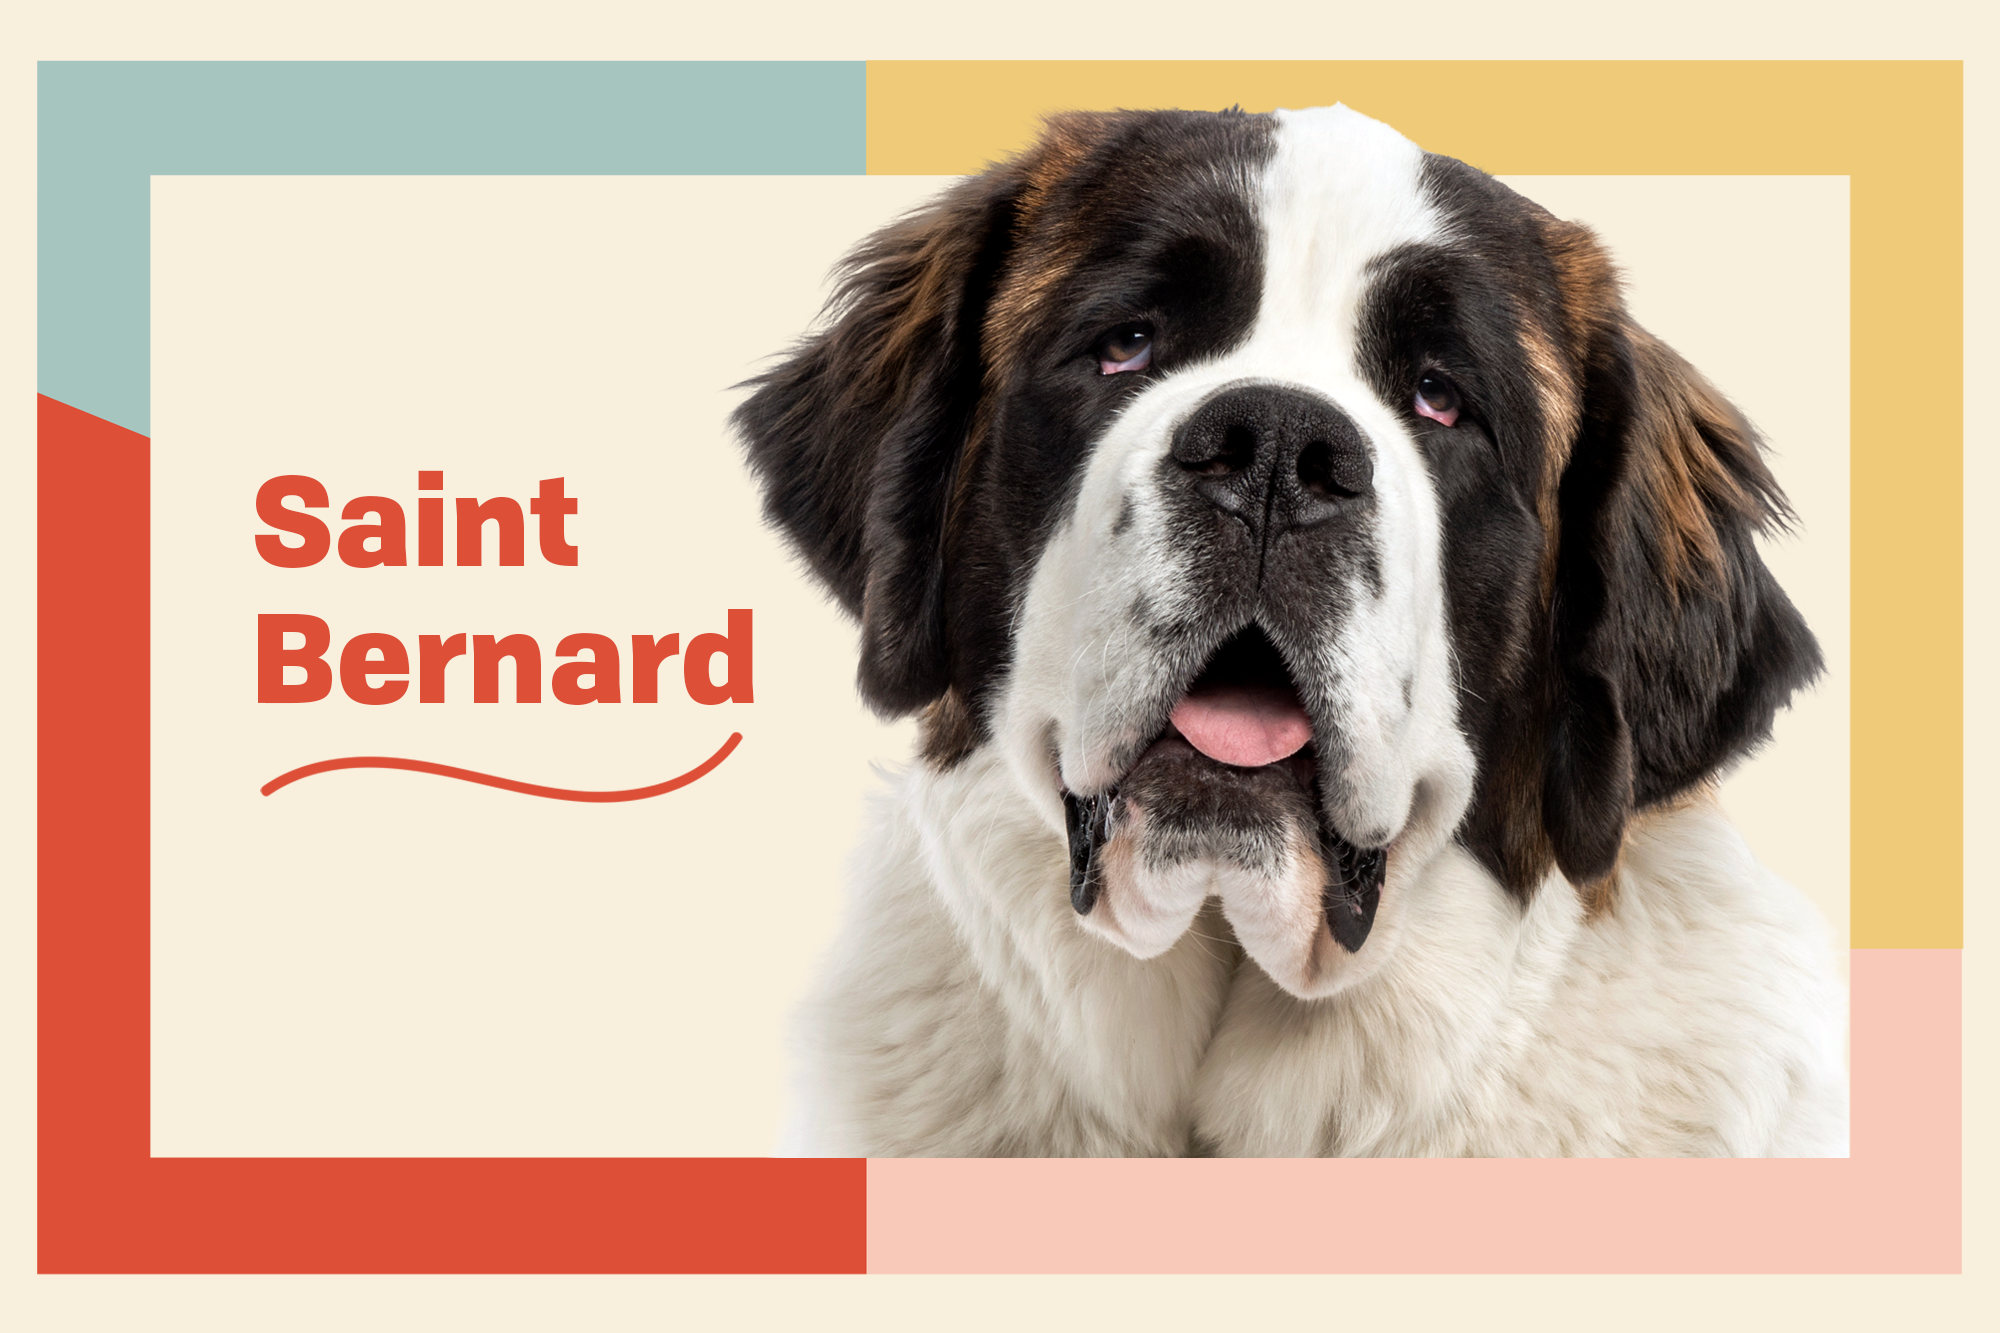 Saint Bernard Breed Photo